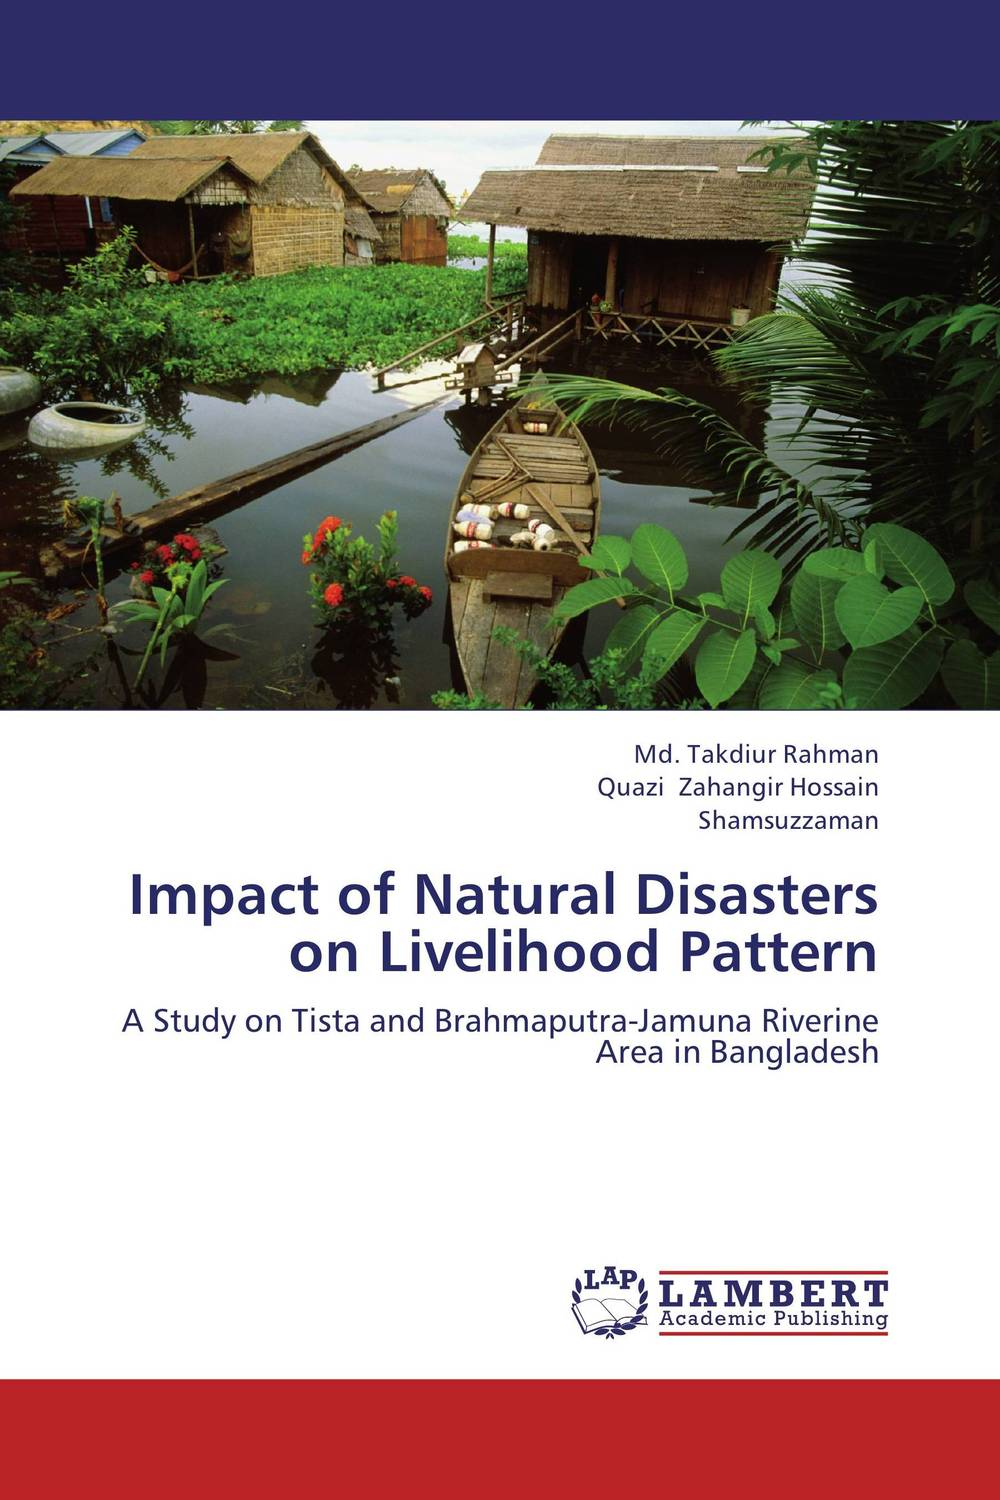 Impact of Natural Disasters on Livelihood Pattern alvin ho allergic to camping hiking and other natural disasters